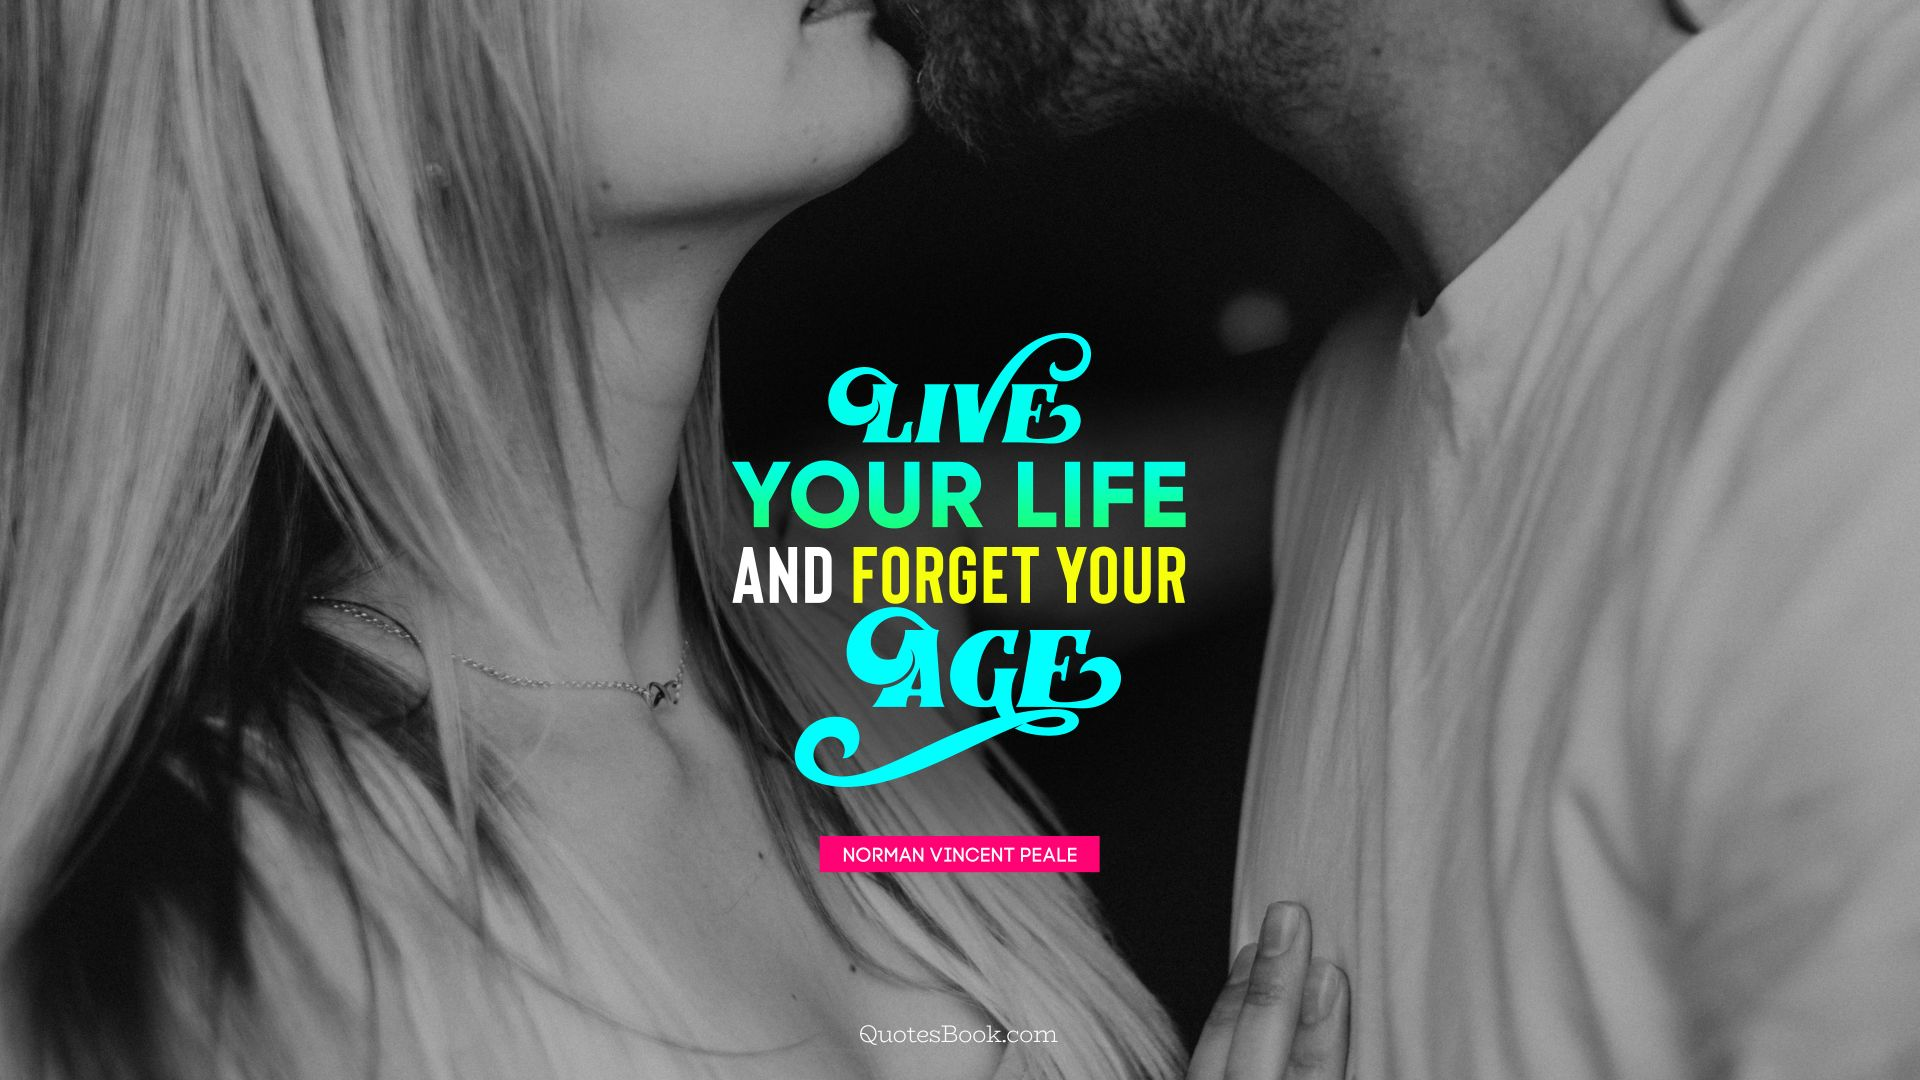 Live your life and forget your age. - Quote by Norman Vincent Peale